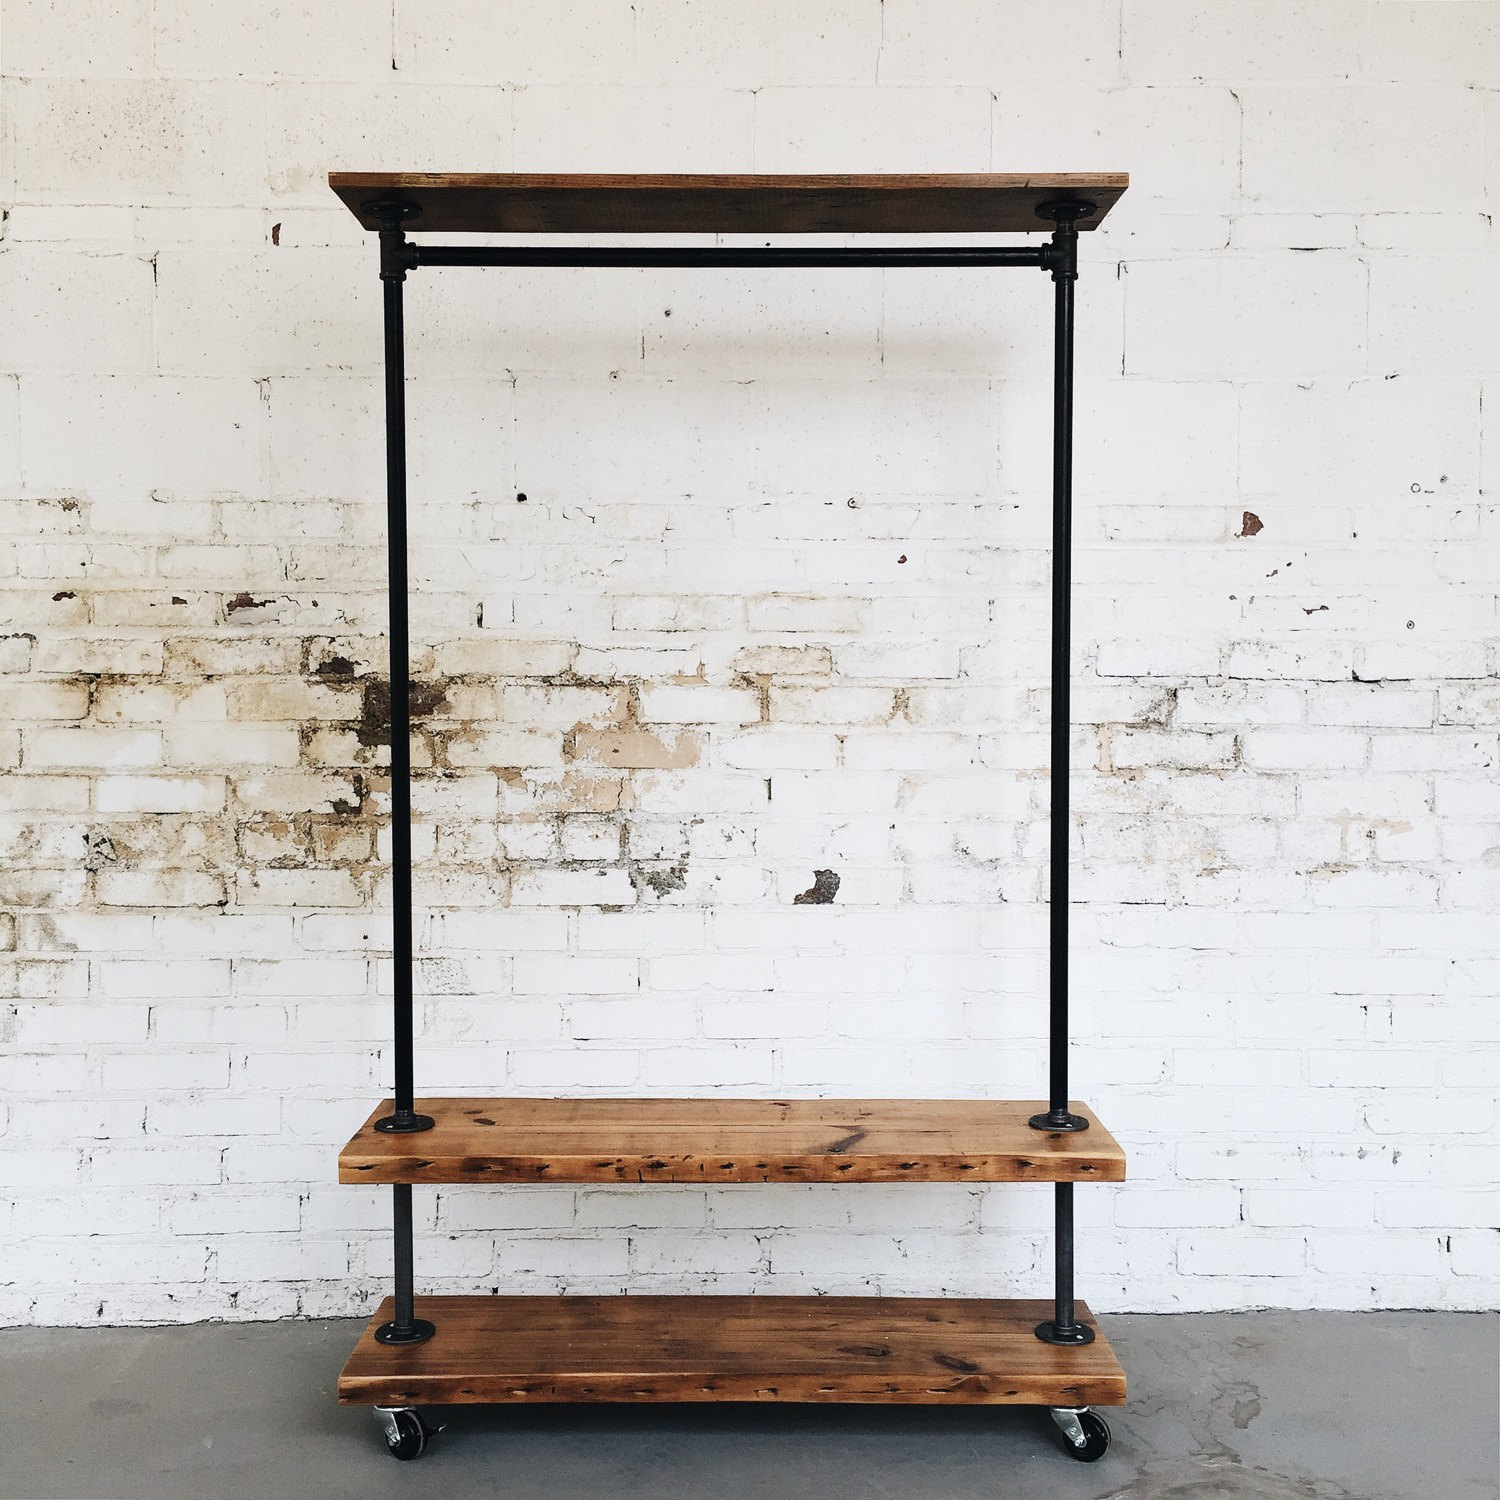 Rustic industrial reclaimed wood retail rolling double garment